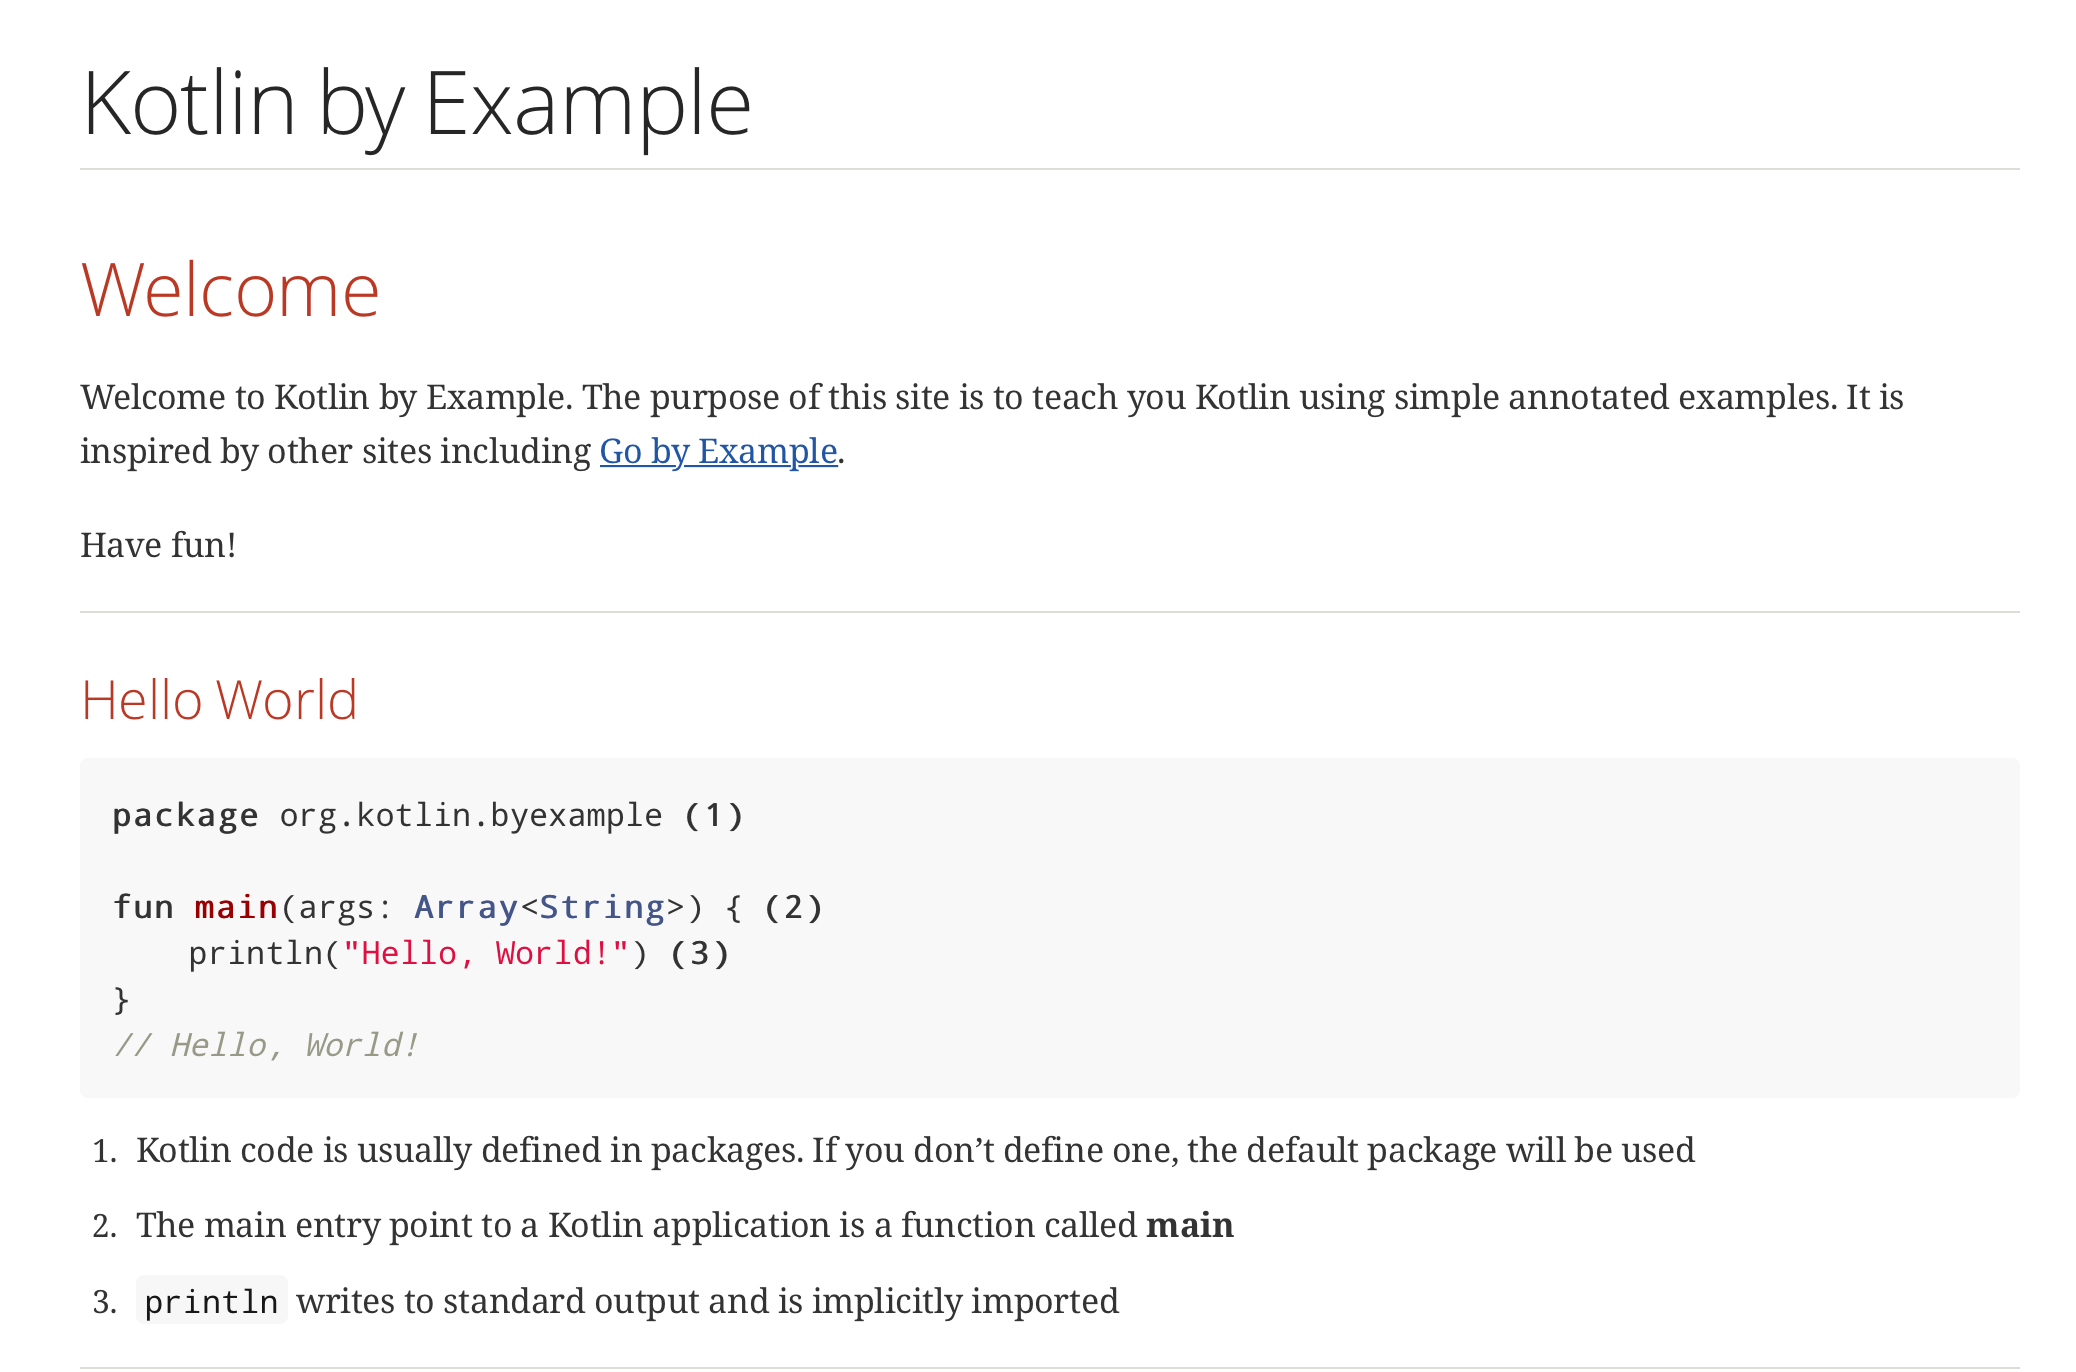 Kotlin by Example Site